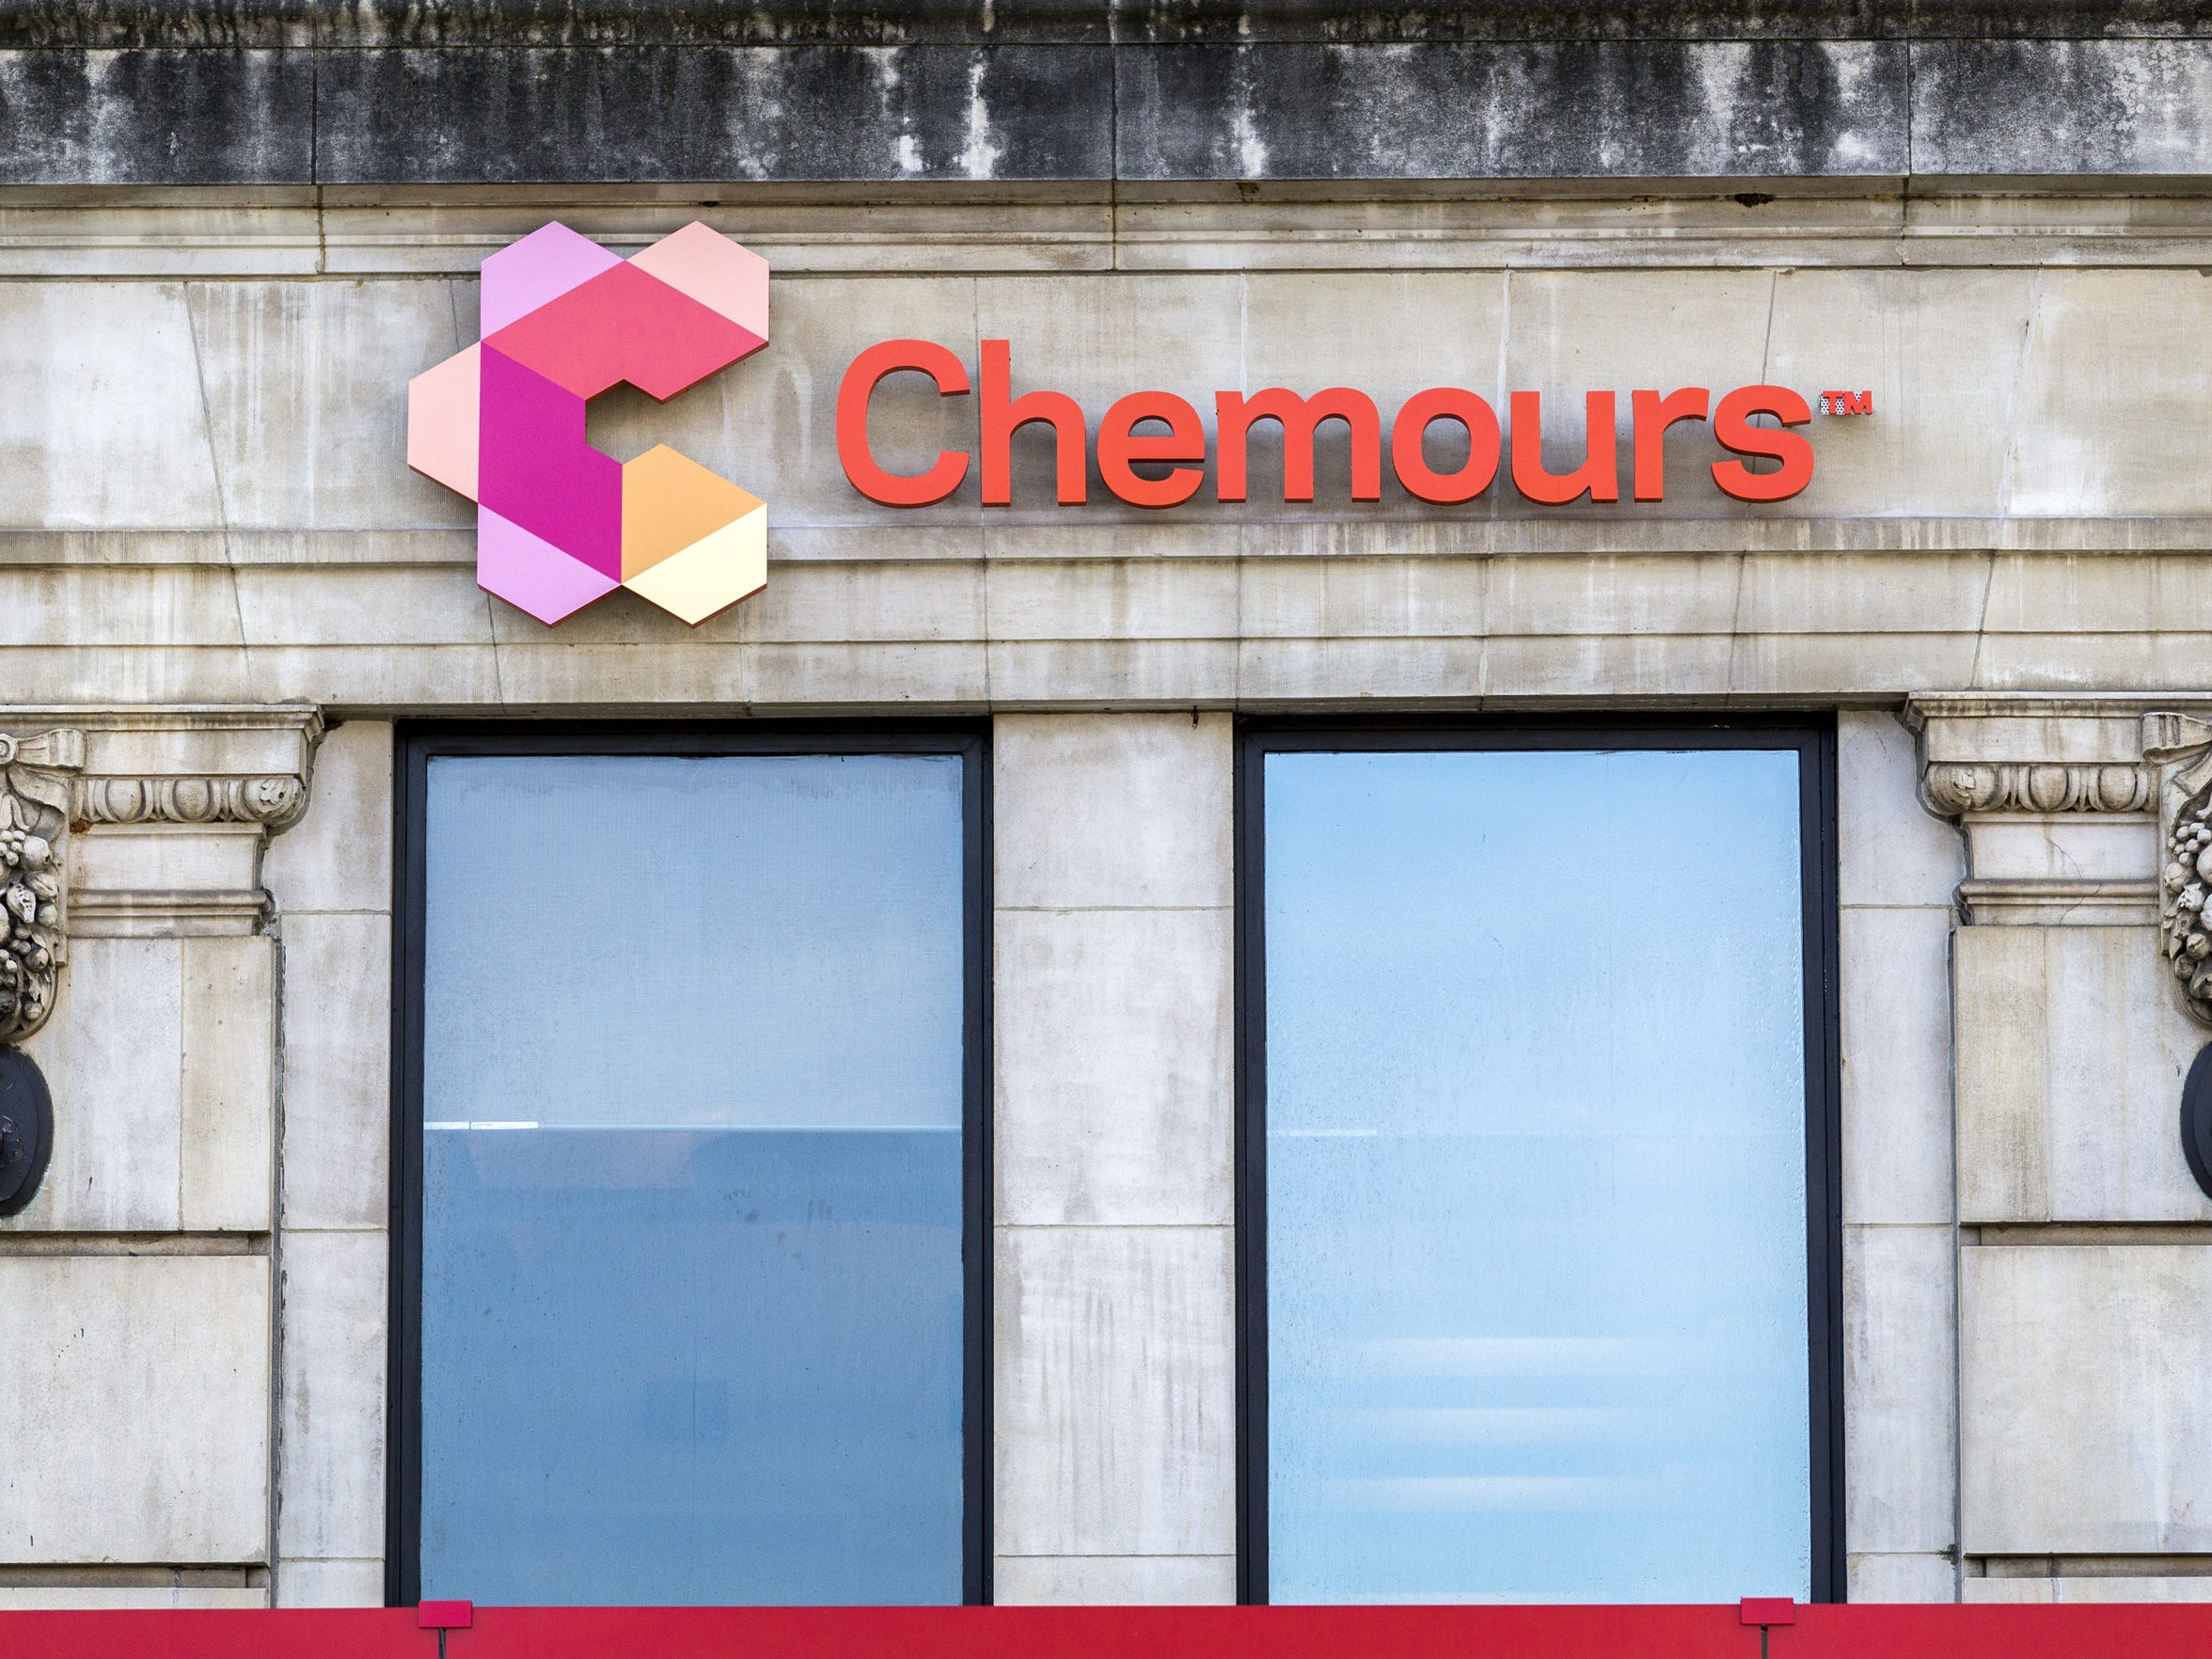 Chemours' headquarters in Wilmington. The company will pay a stockholders a $0.03 per share in the first quarter of 2017.